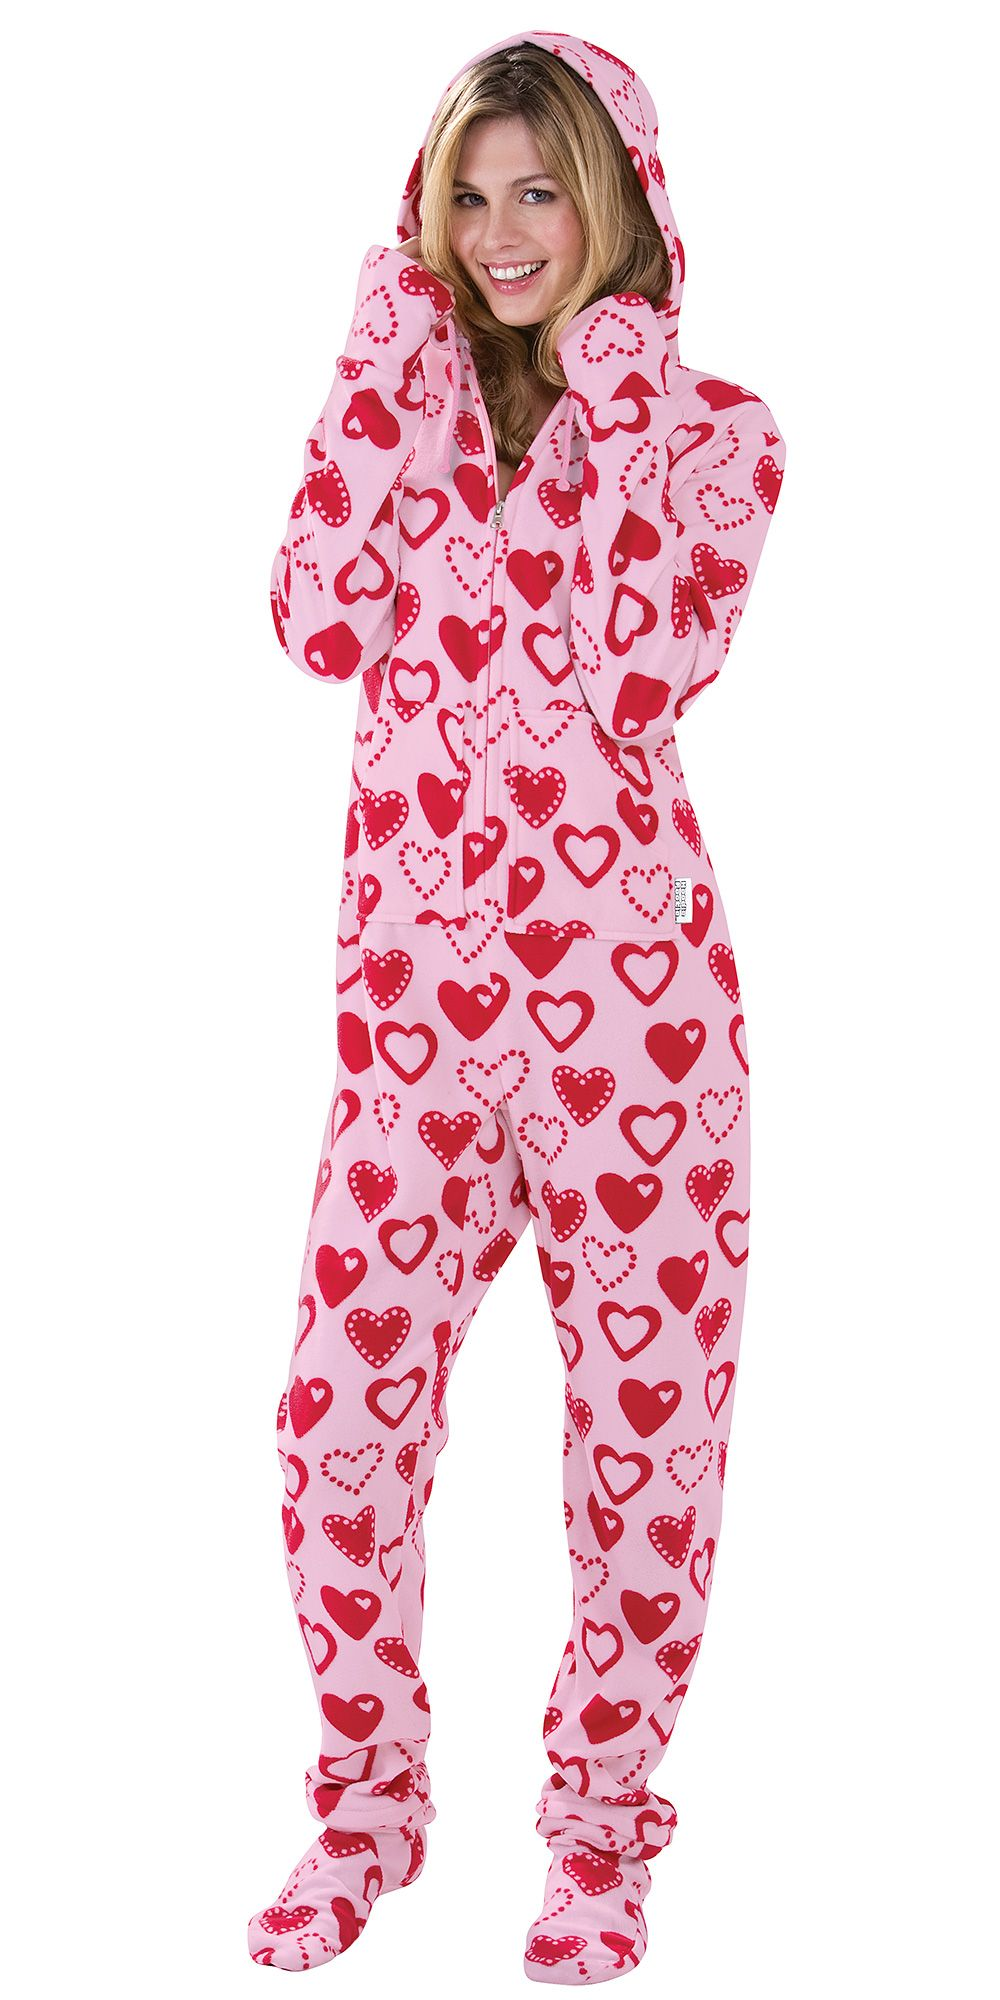 0295be995c Sweetheart Snuggle Fleece Hoodie-Footie for Women - Valentine s Day Pajamas  from PajamaGram.  79.99  HoodieFootie  ValentinesDay  Hearts  Pajamas